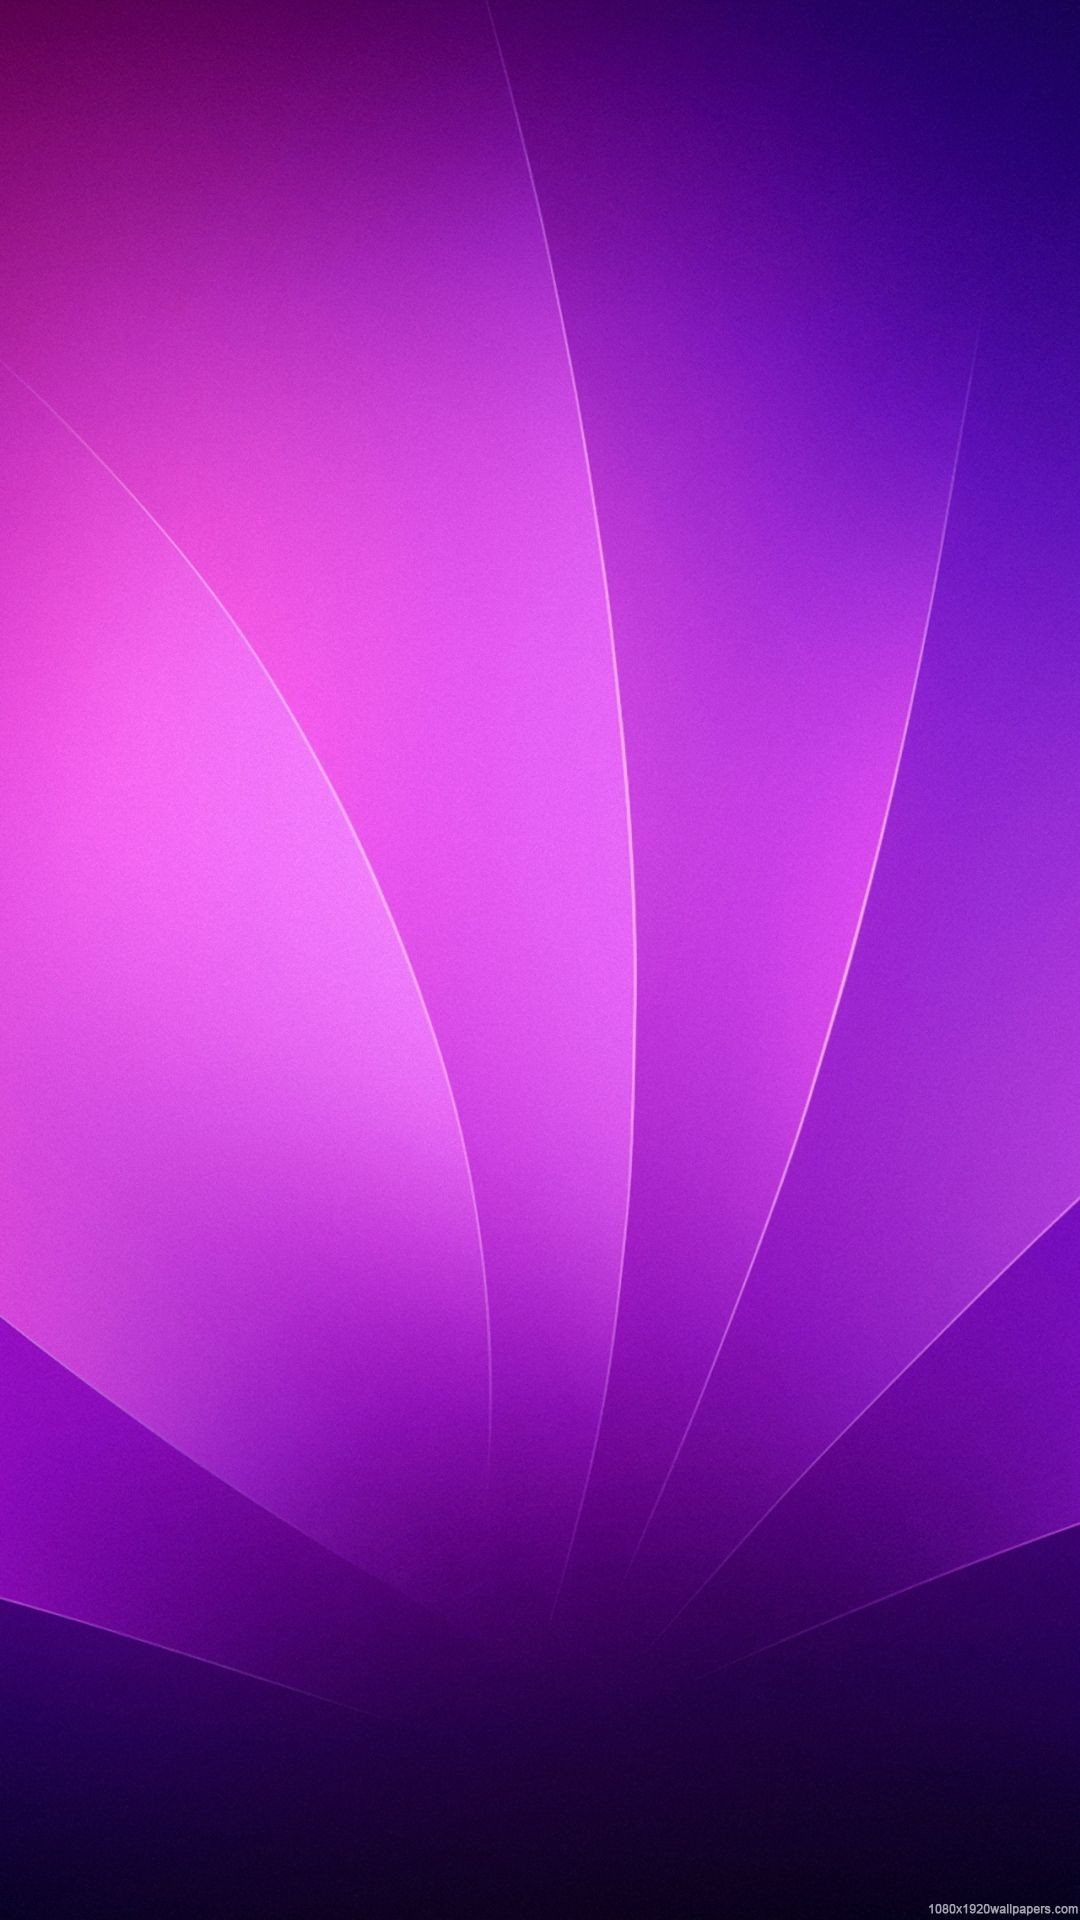 1080x1920  leaves line abstract purple wallpapers HD - 1080P abstract  wallpapers